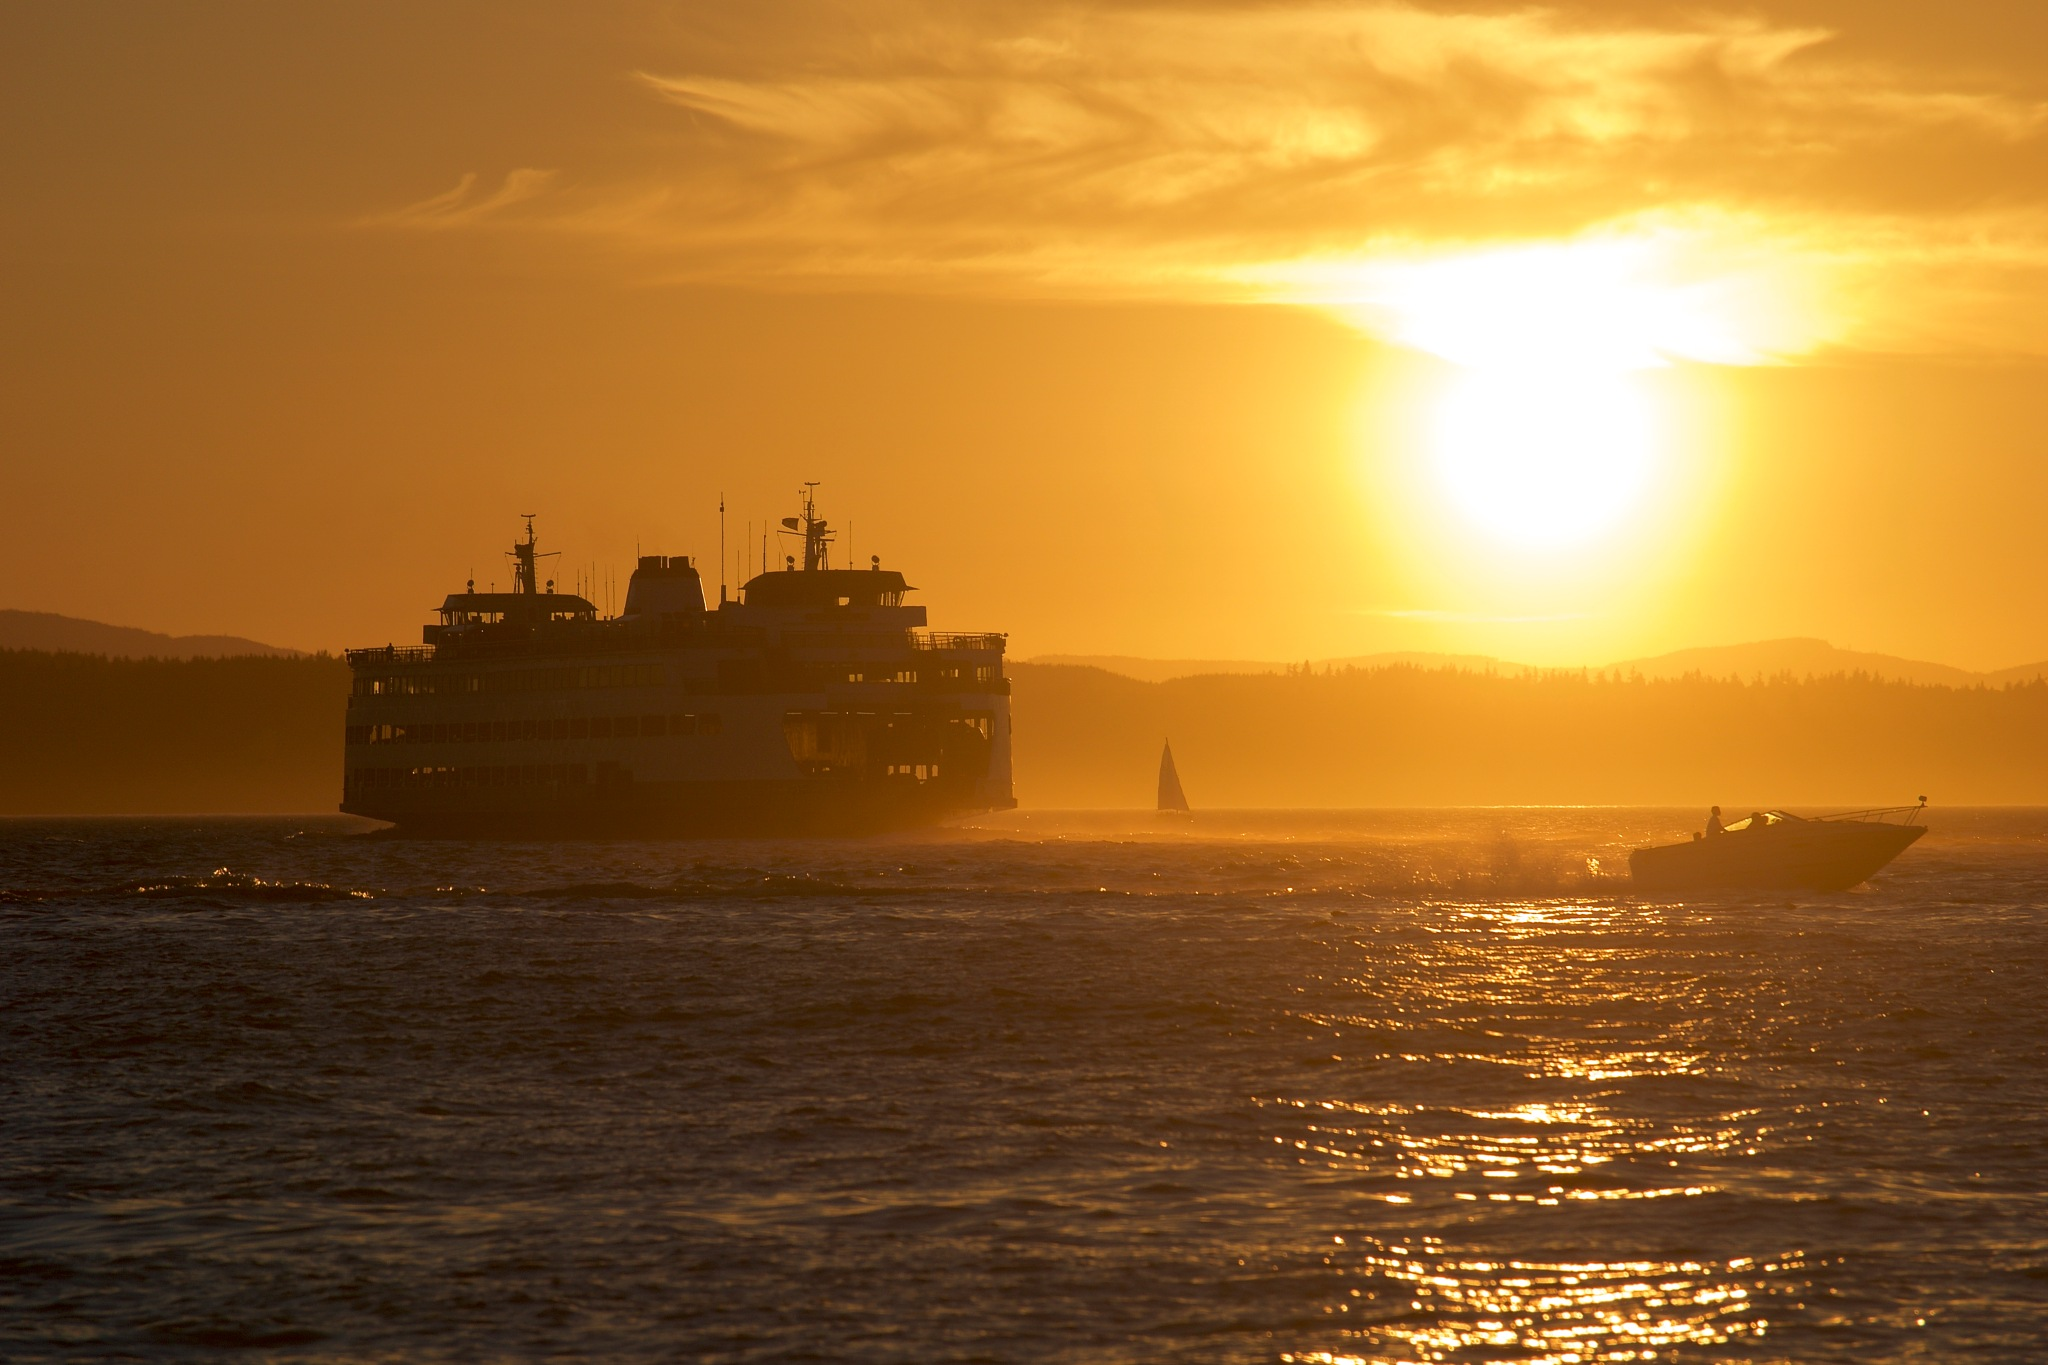 Sunset traffic  by orhidea images